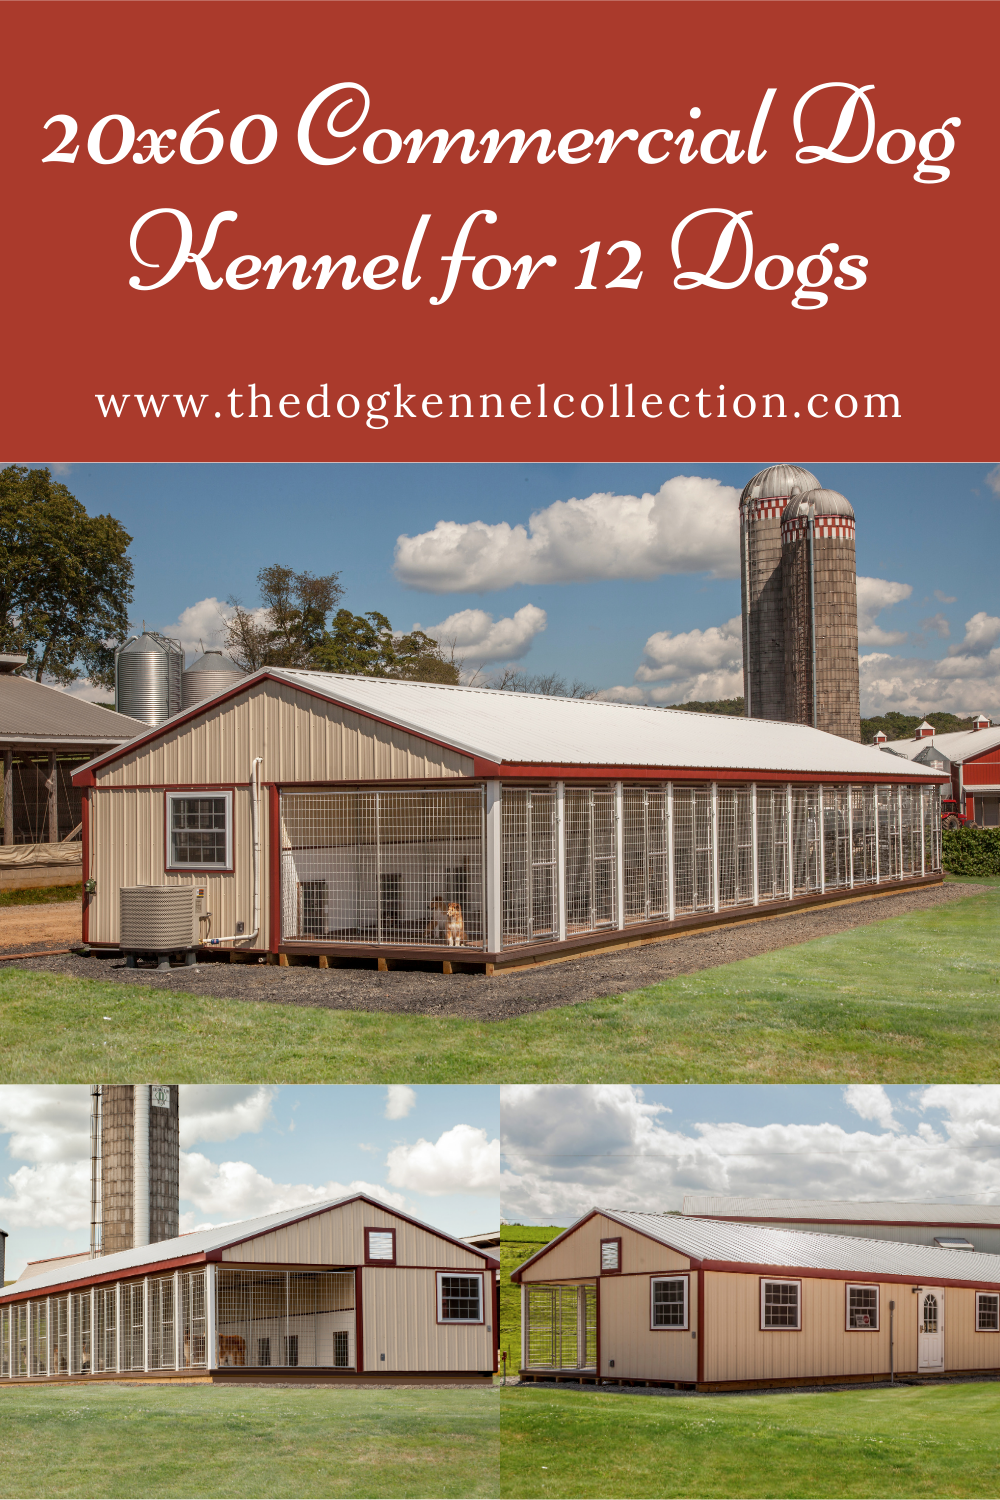 20x60 Commercial Dog Kennel For 12 Dogs In 2020 Dog Kennel Kennel Stainless Steel Channel